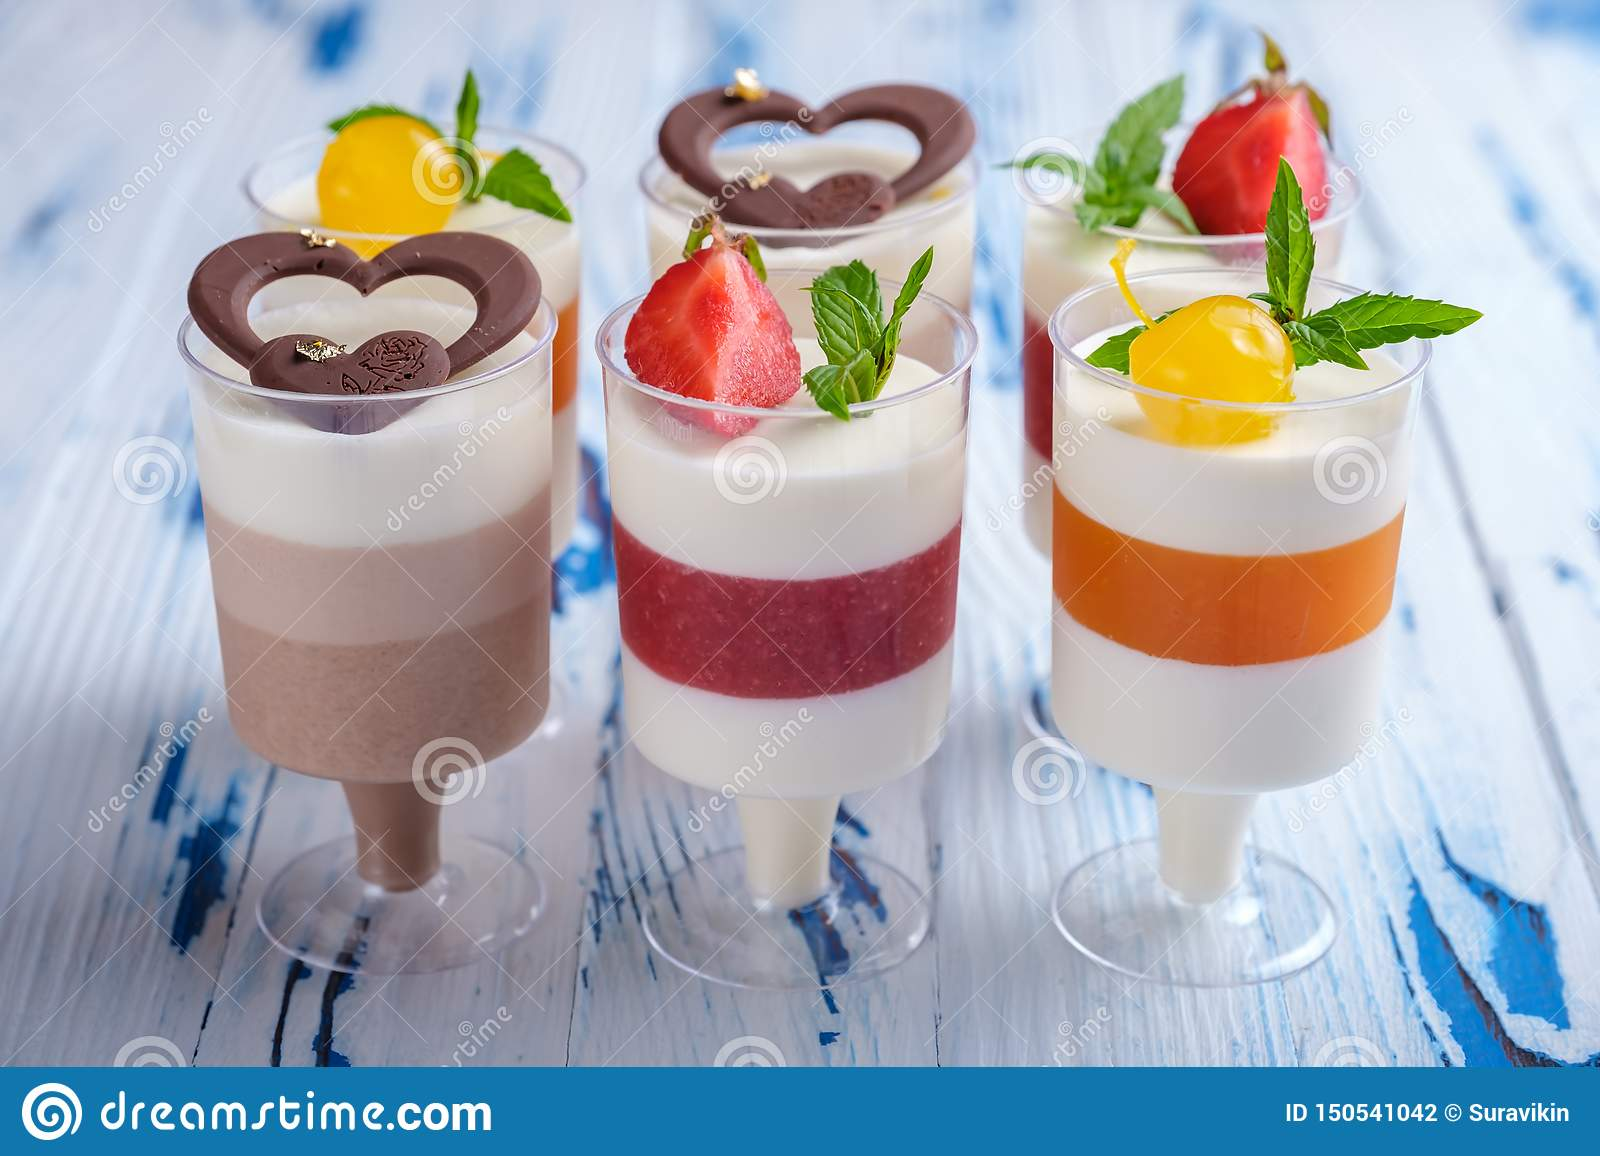 Six mousse desserts in wineglasses, decorated chocolate, strawberry, mint and cocktail cherries on aged wooden table